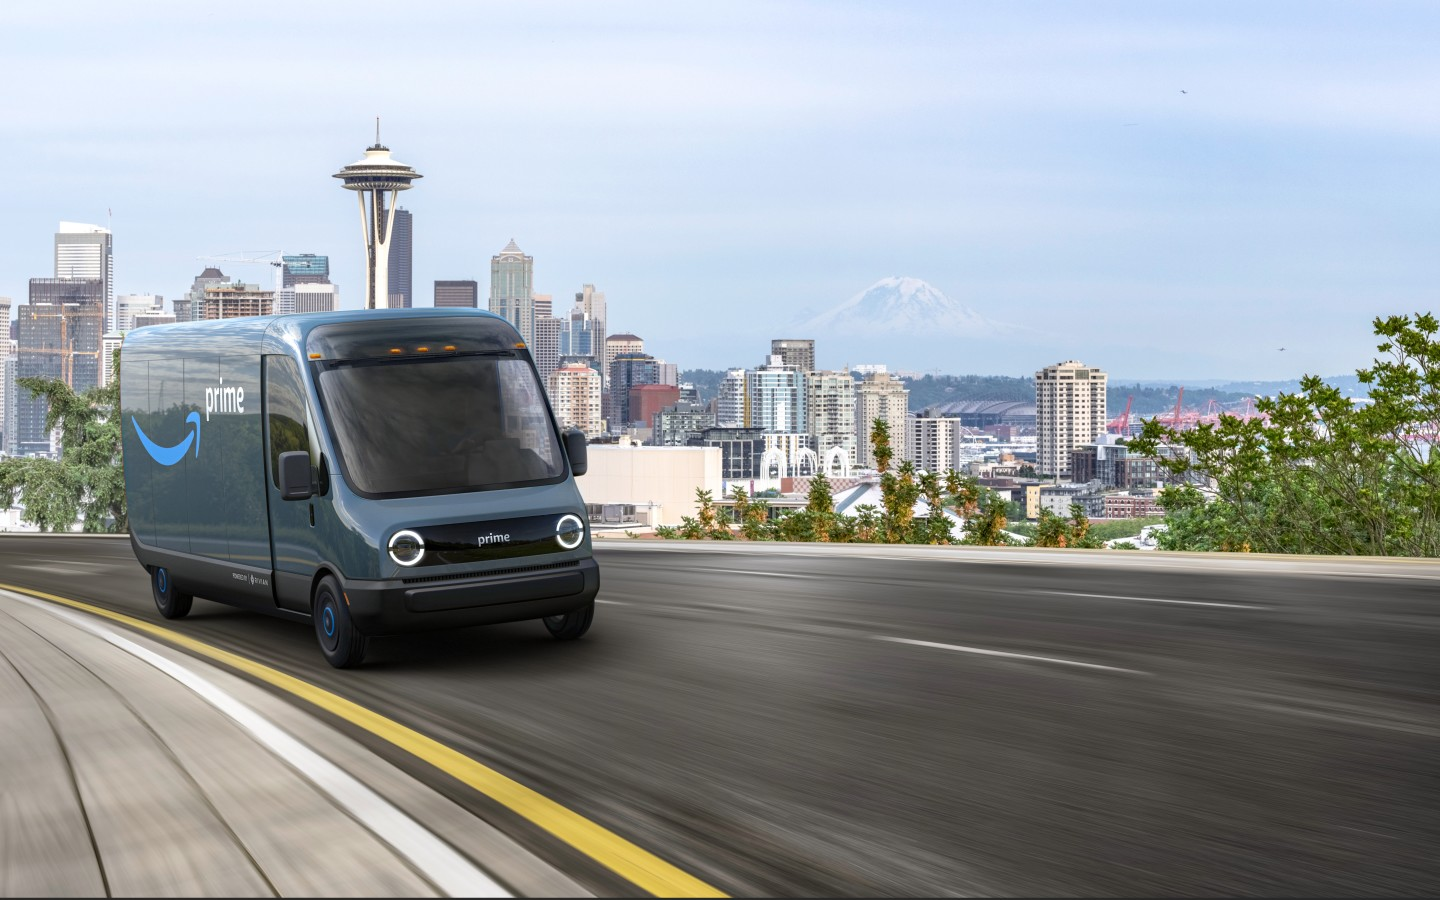 Rendering of van driving up a road. A view of densely clustered buildings is in the distance.